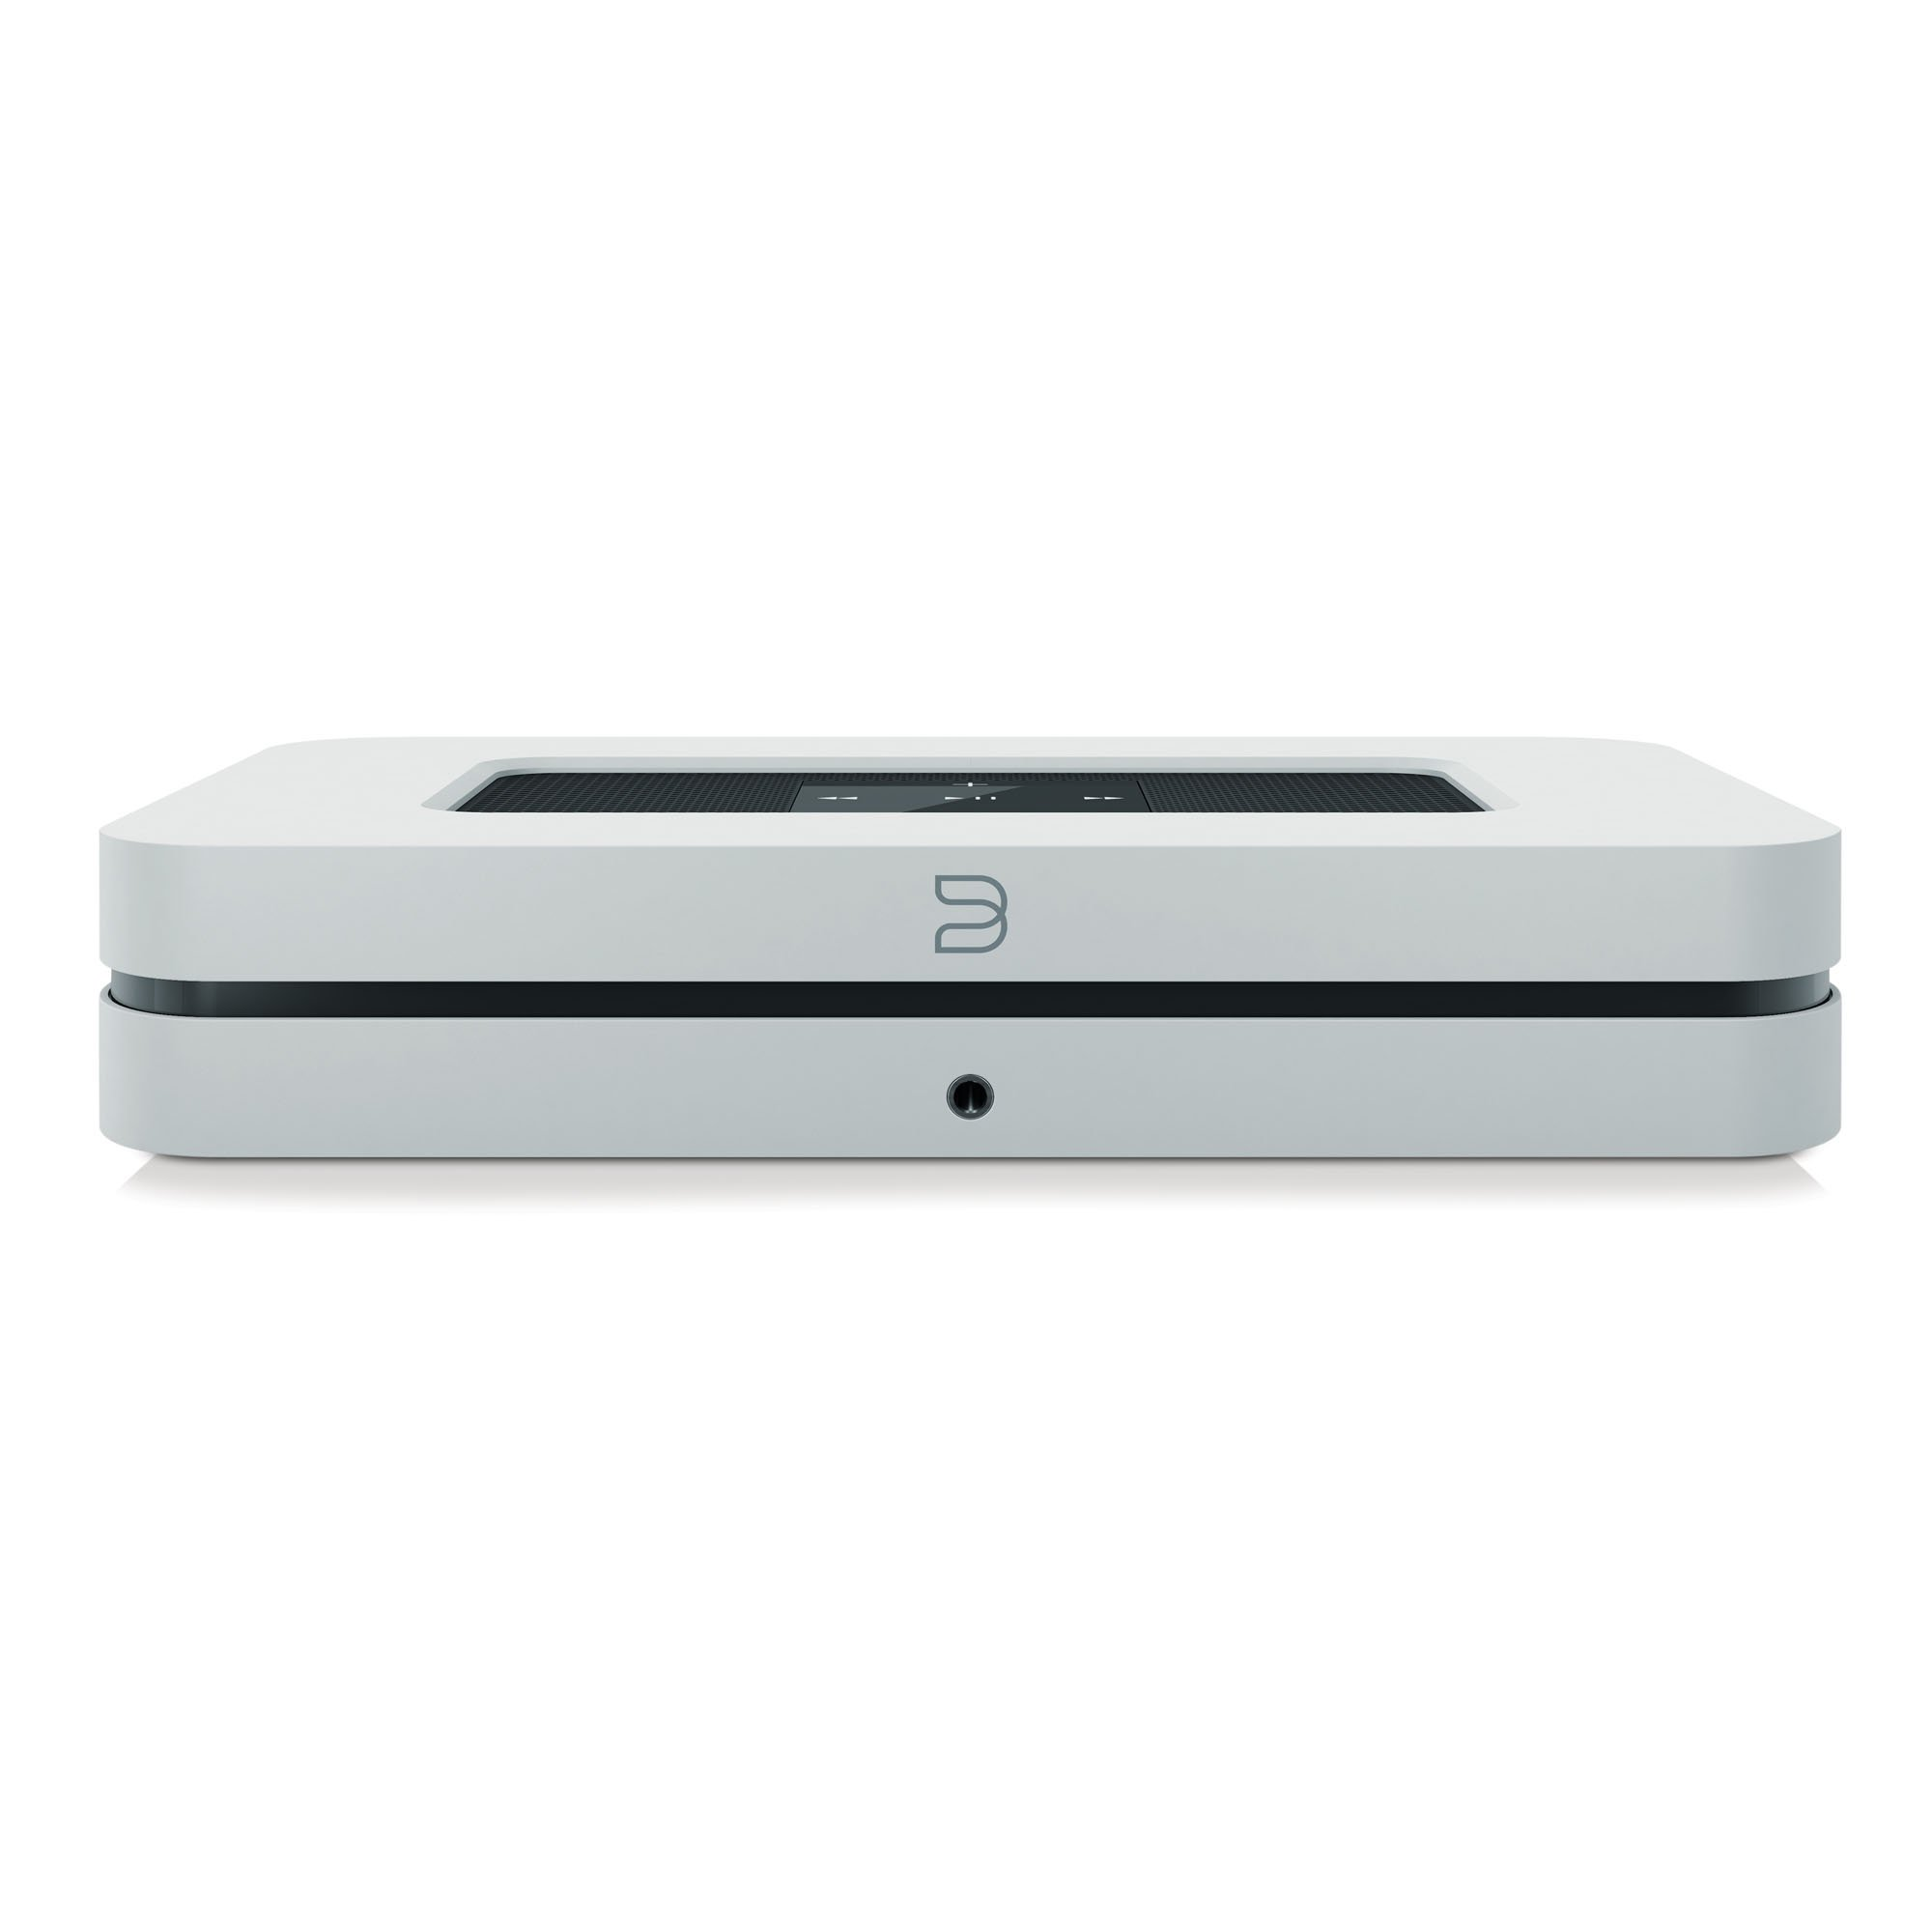 Bluesound NODE 2 Wireless Multi-room Hi-Res Music Streaming Player - White